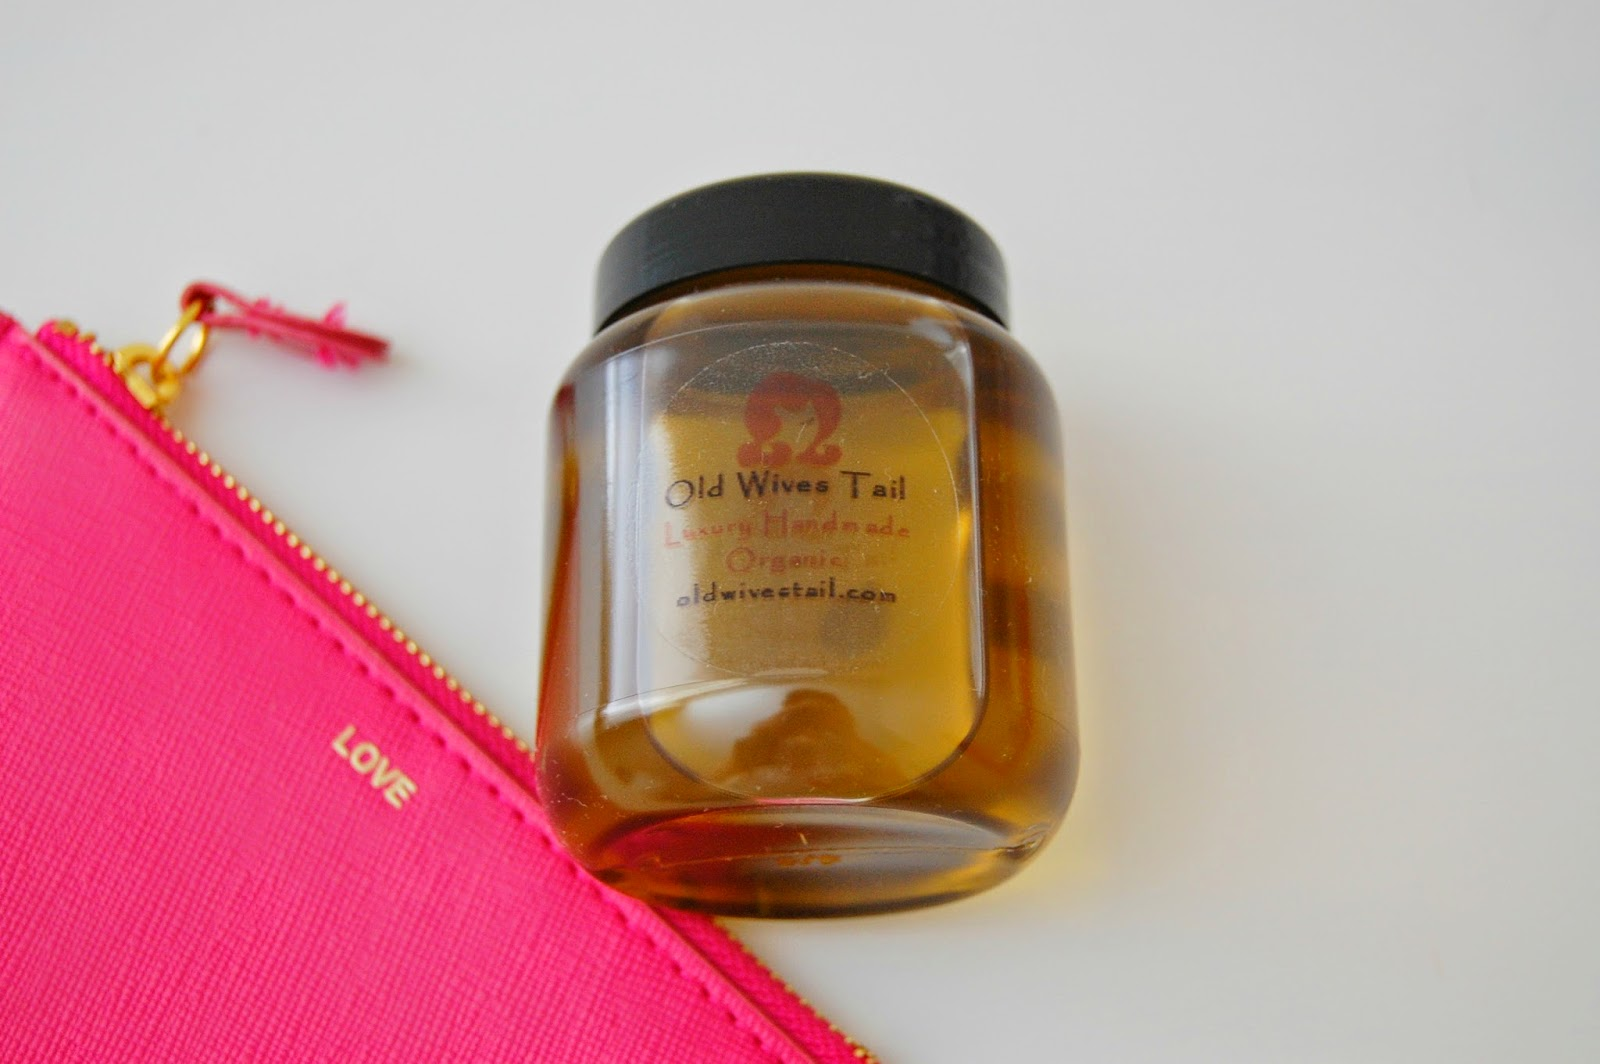 Old_Wives_Tail_Luxury_Handmade_Organic_Hair_Oil